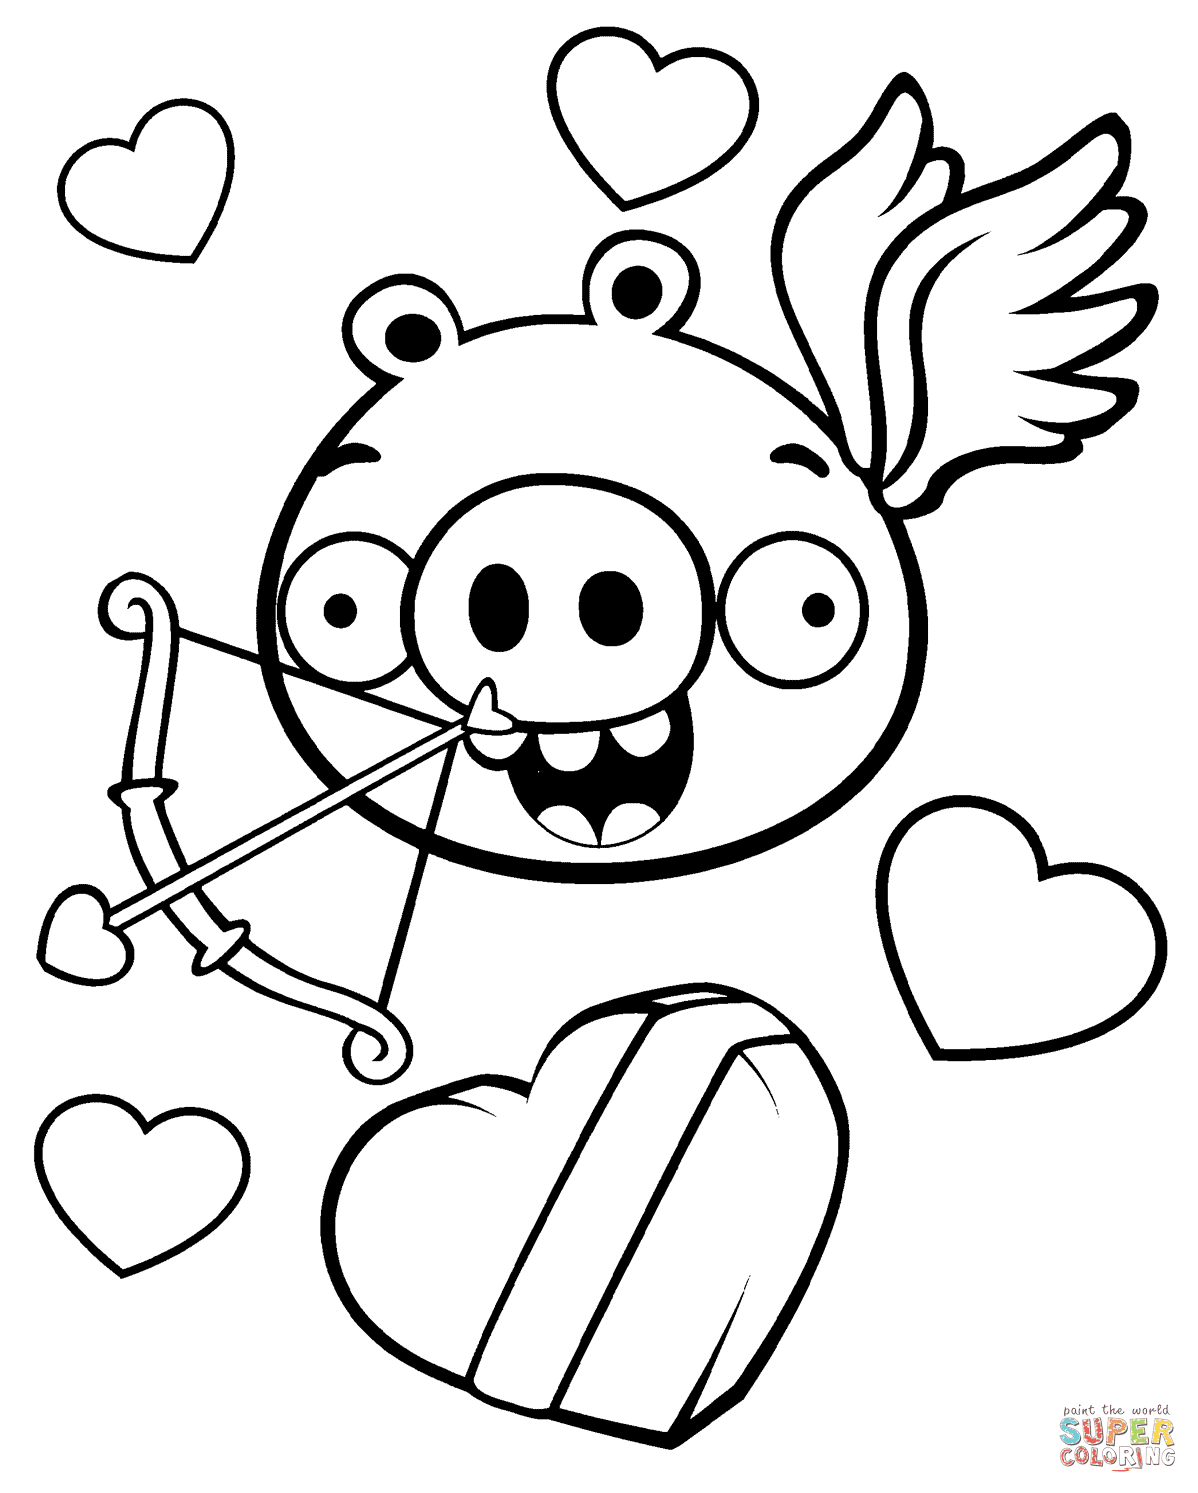 740 Top Valentine Cartoon Coloring Pages Images & Pictures In HD